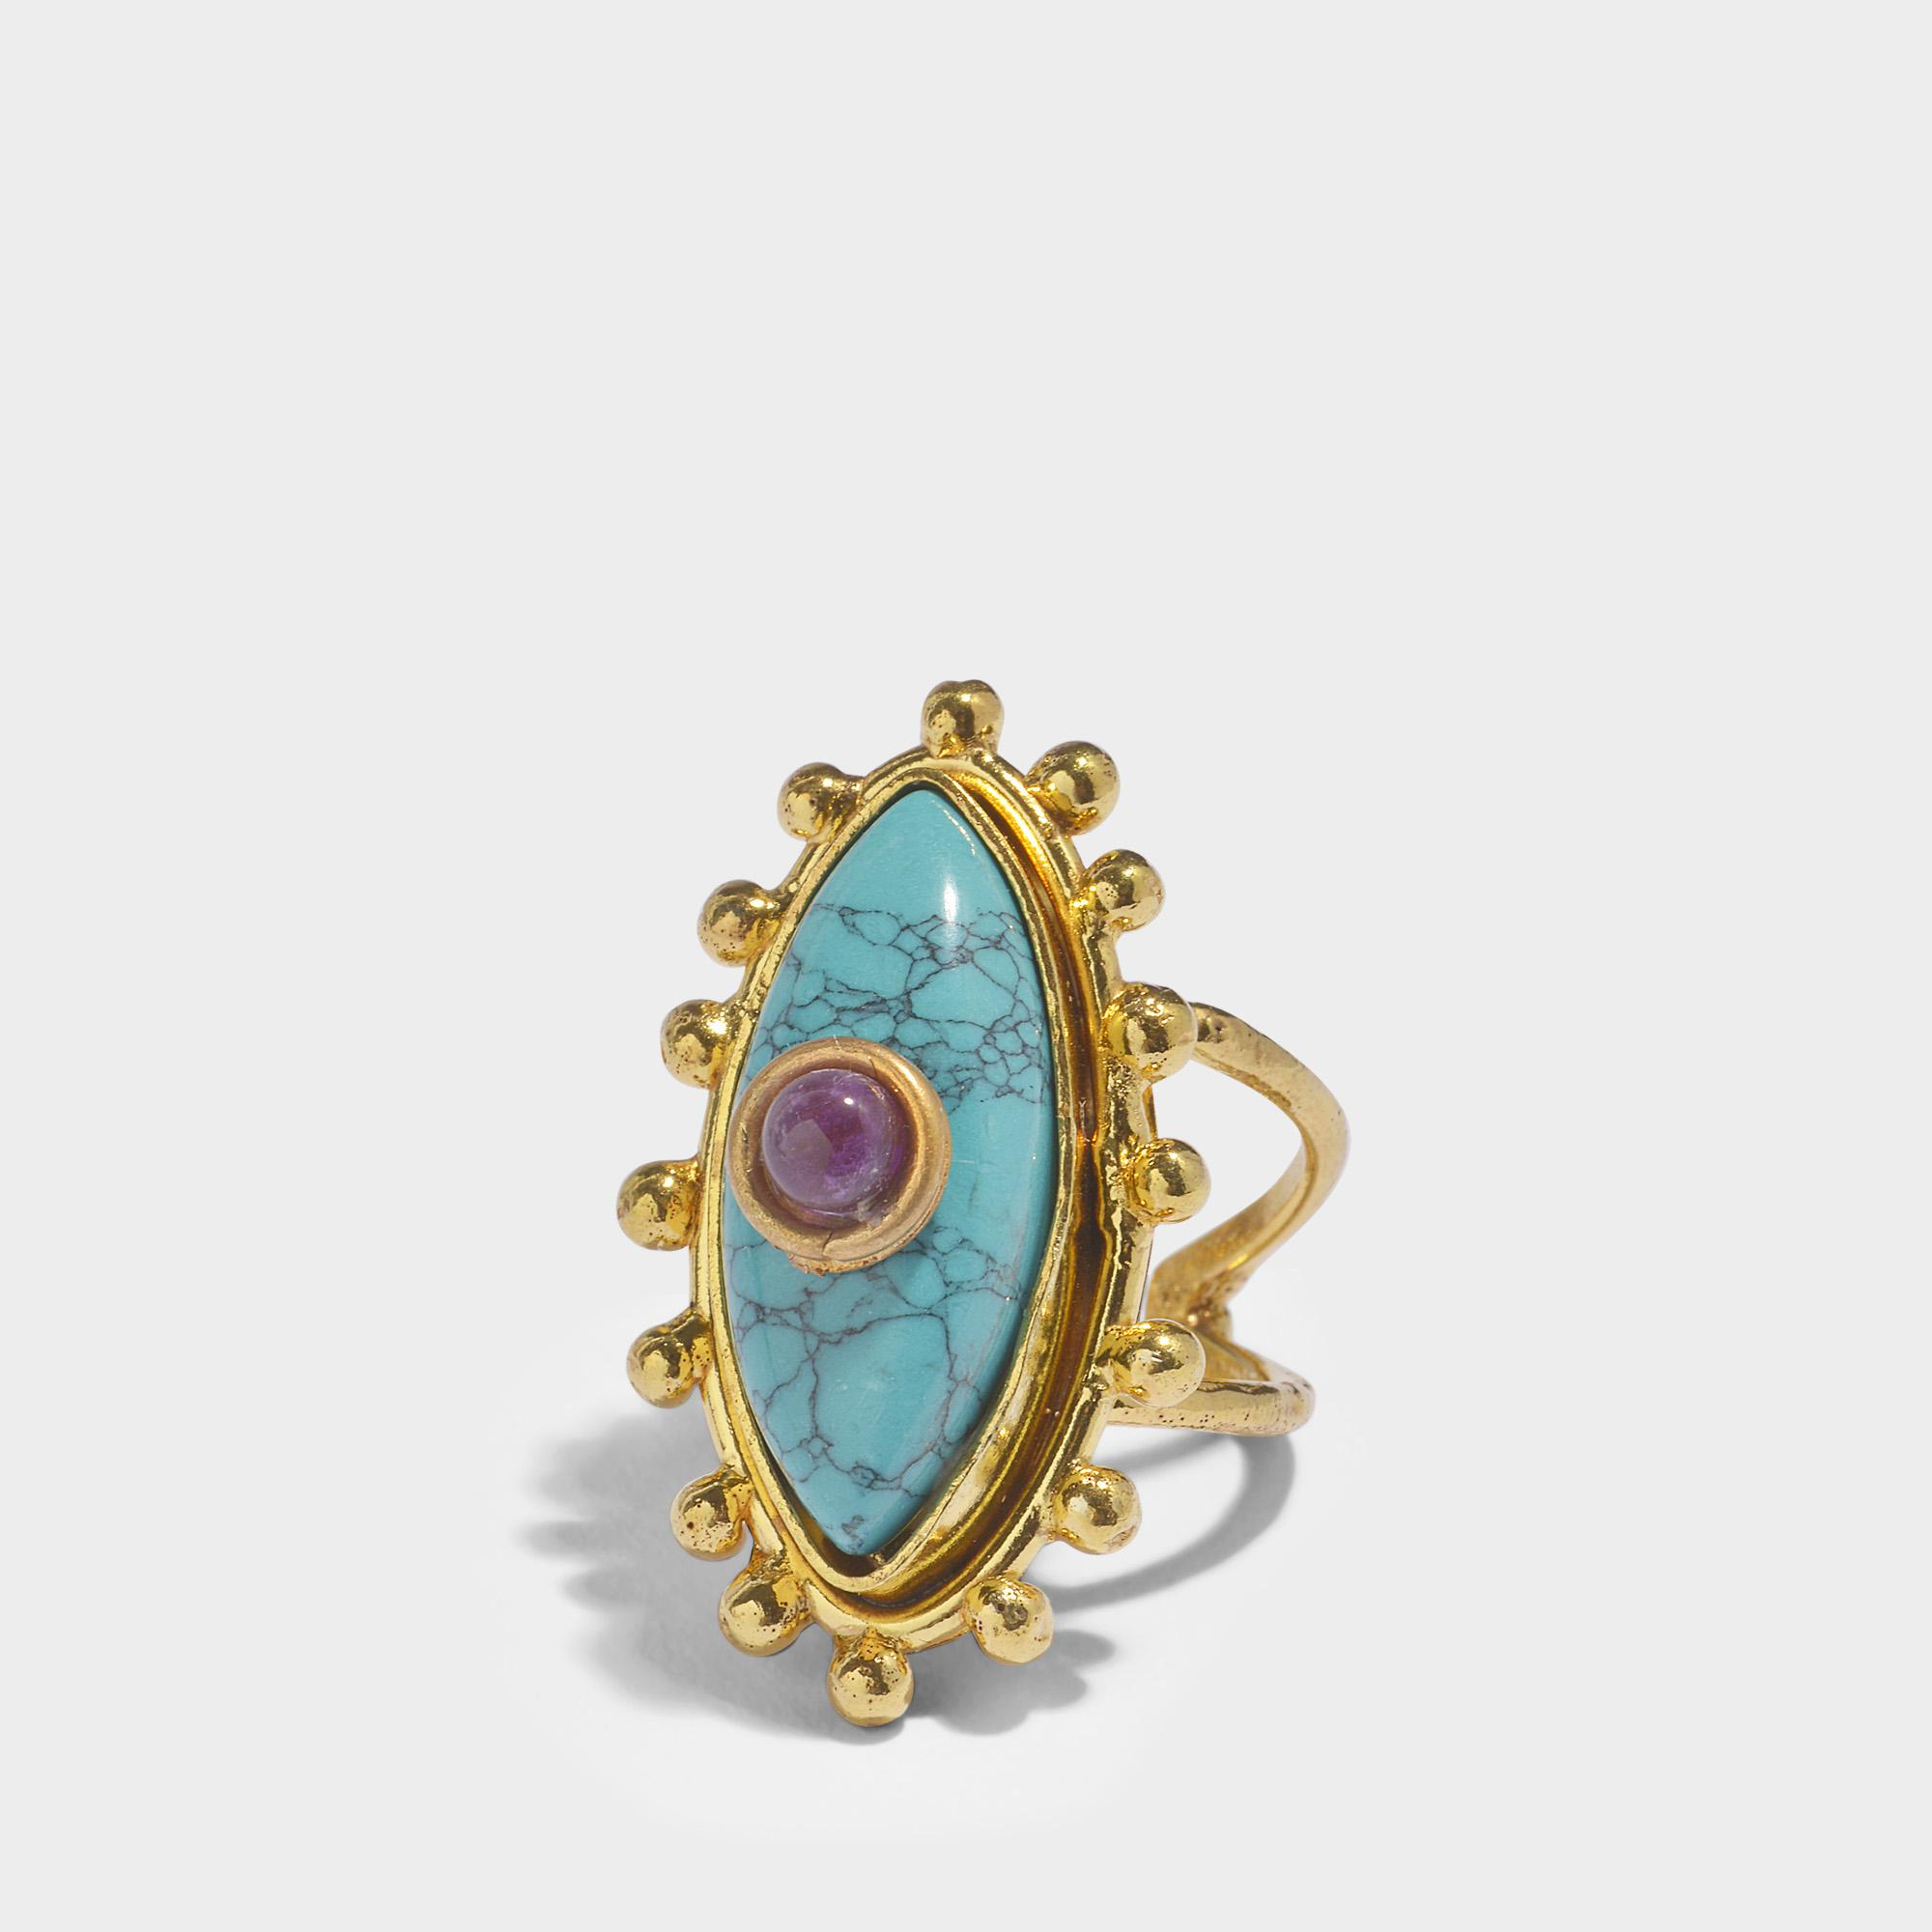 Sylvia Toledano The Third Eye Ring in Gold-Plated Brass with Turquoise and Ametyst yV6ys6NvN6